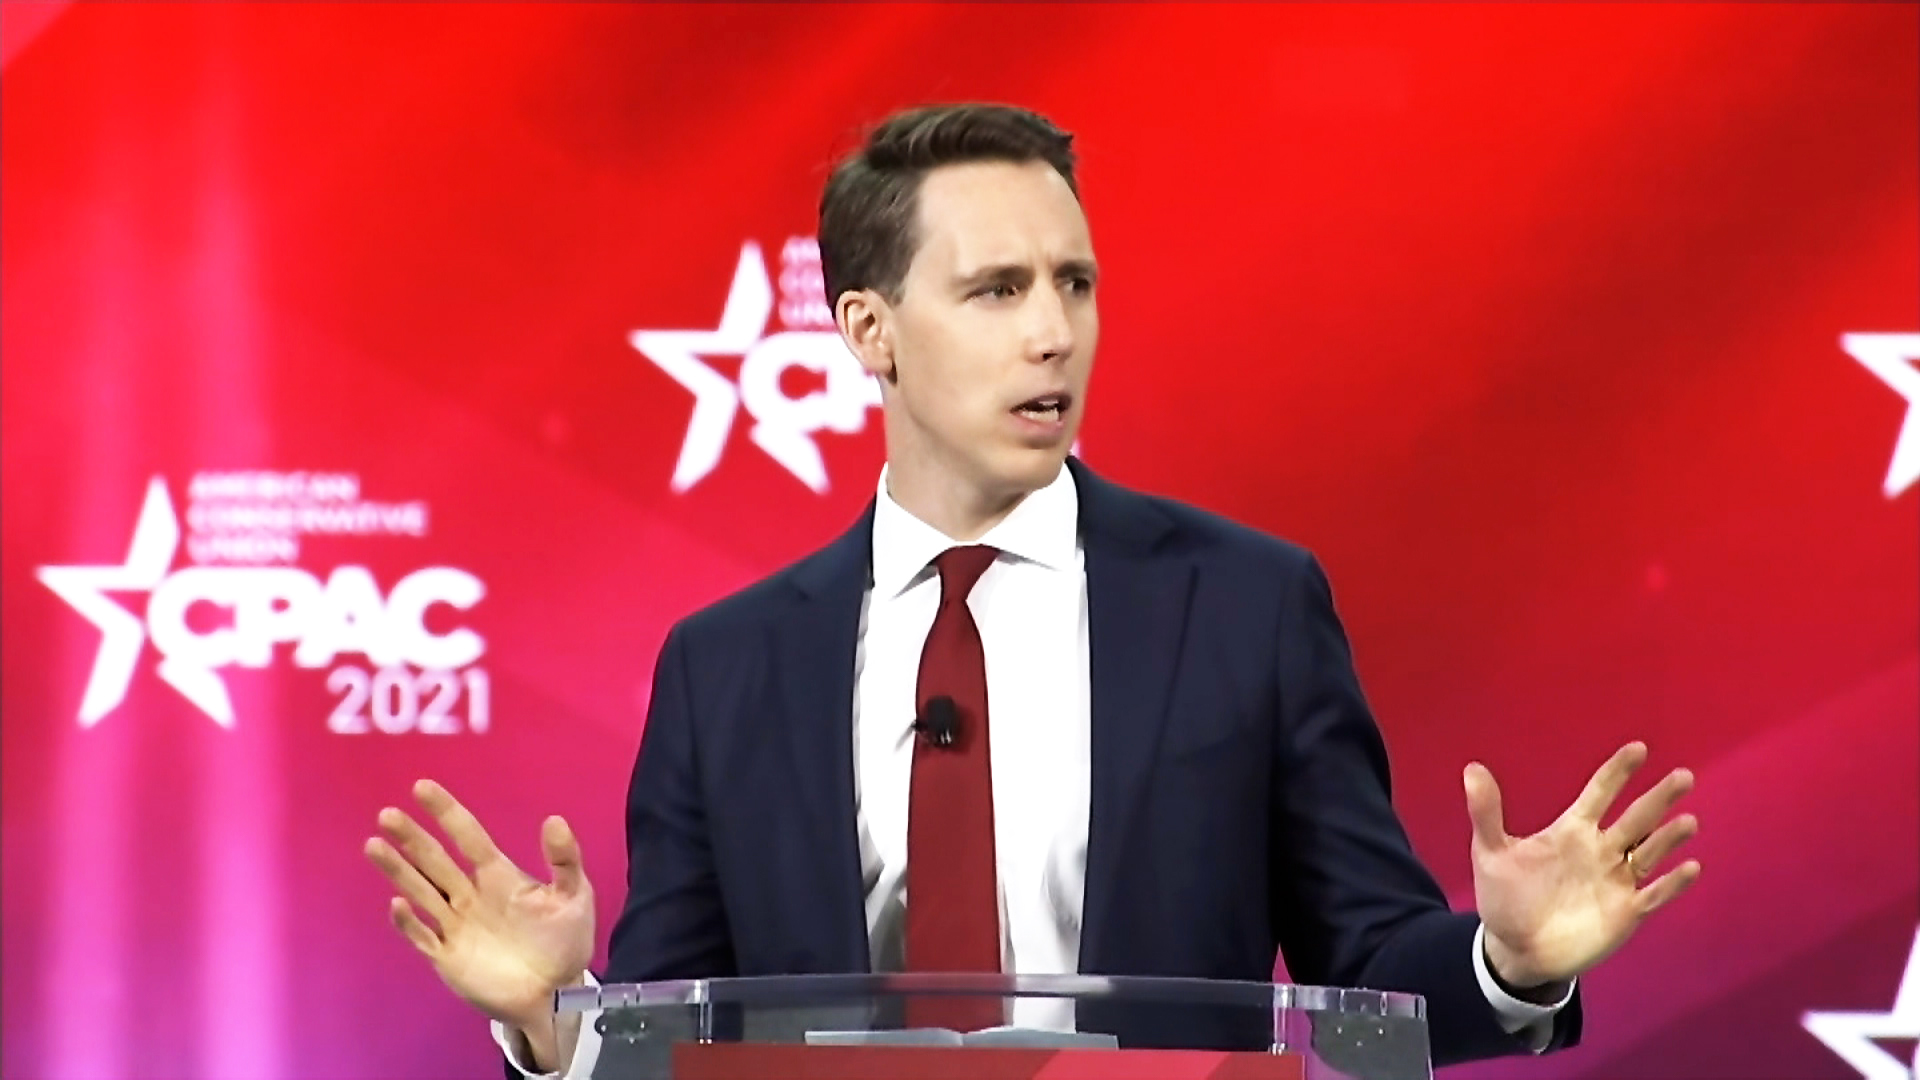 Hawley raised $3 million in 2021's first quarter after objecting to electoral votes Biden won